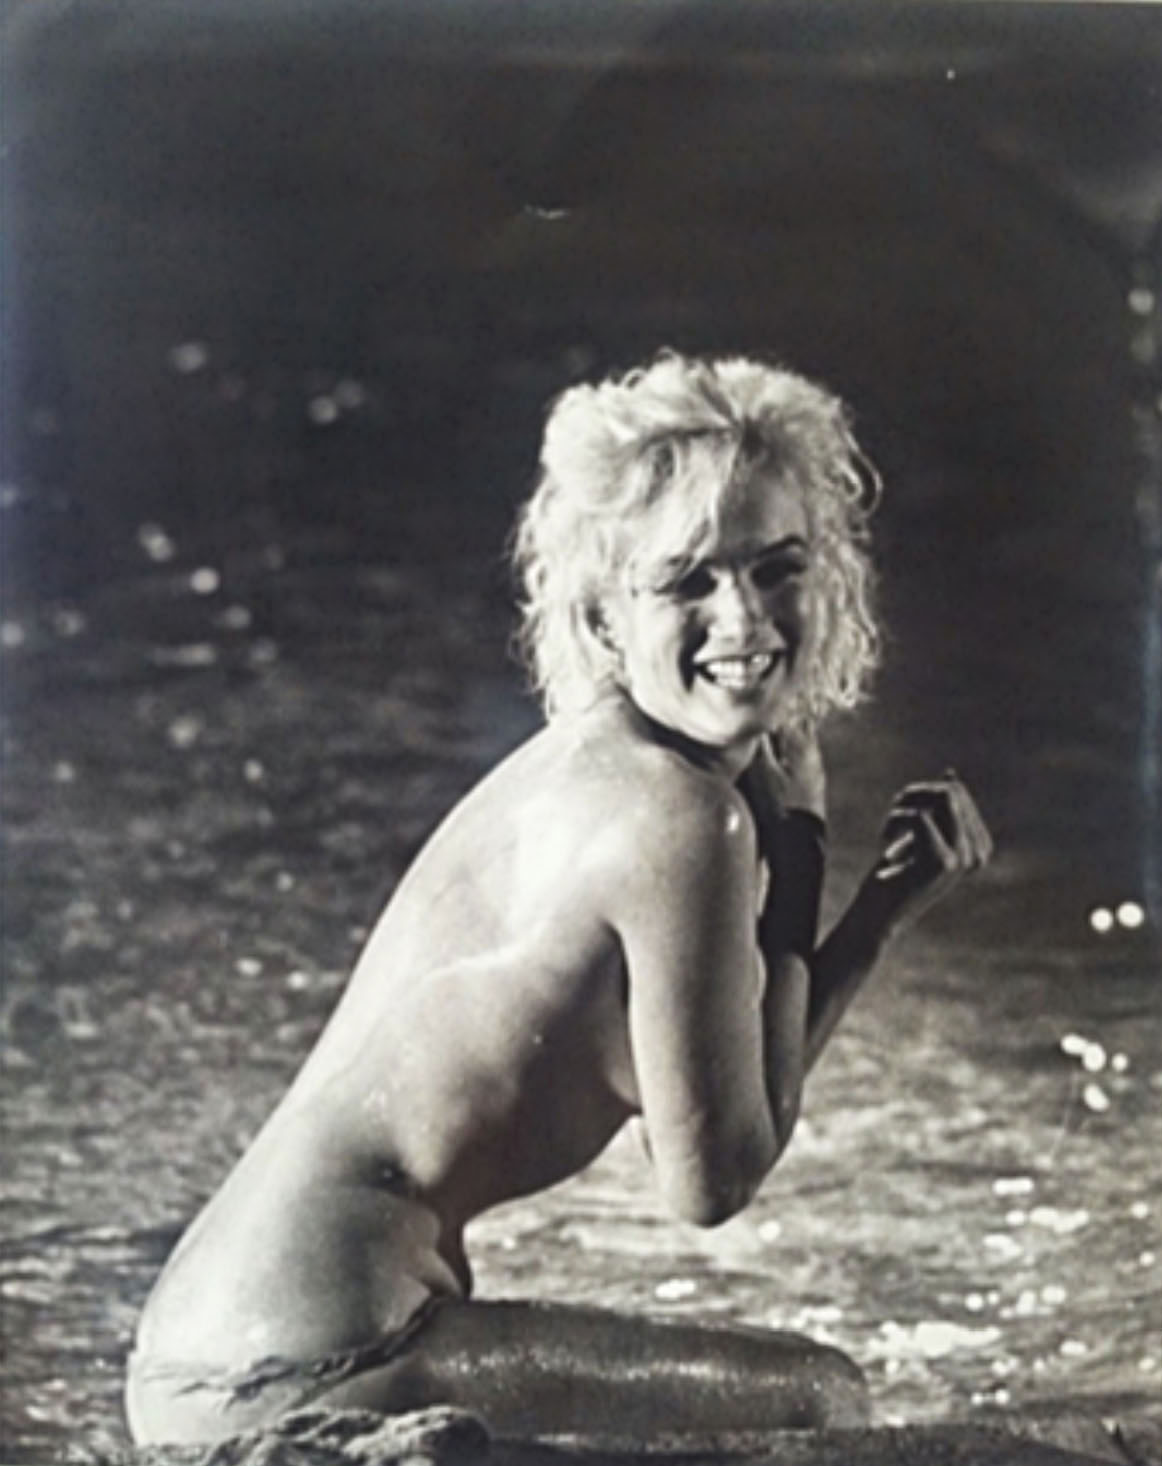 Lawrence Schiller - Marilyn Monroe in the Nude